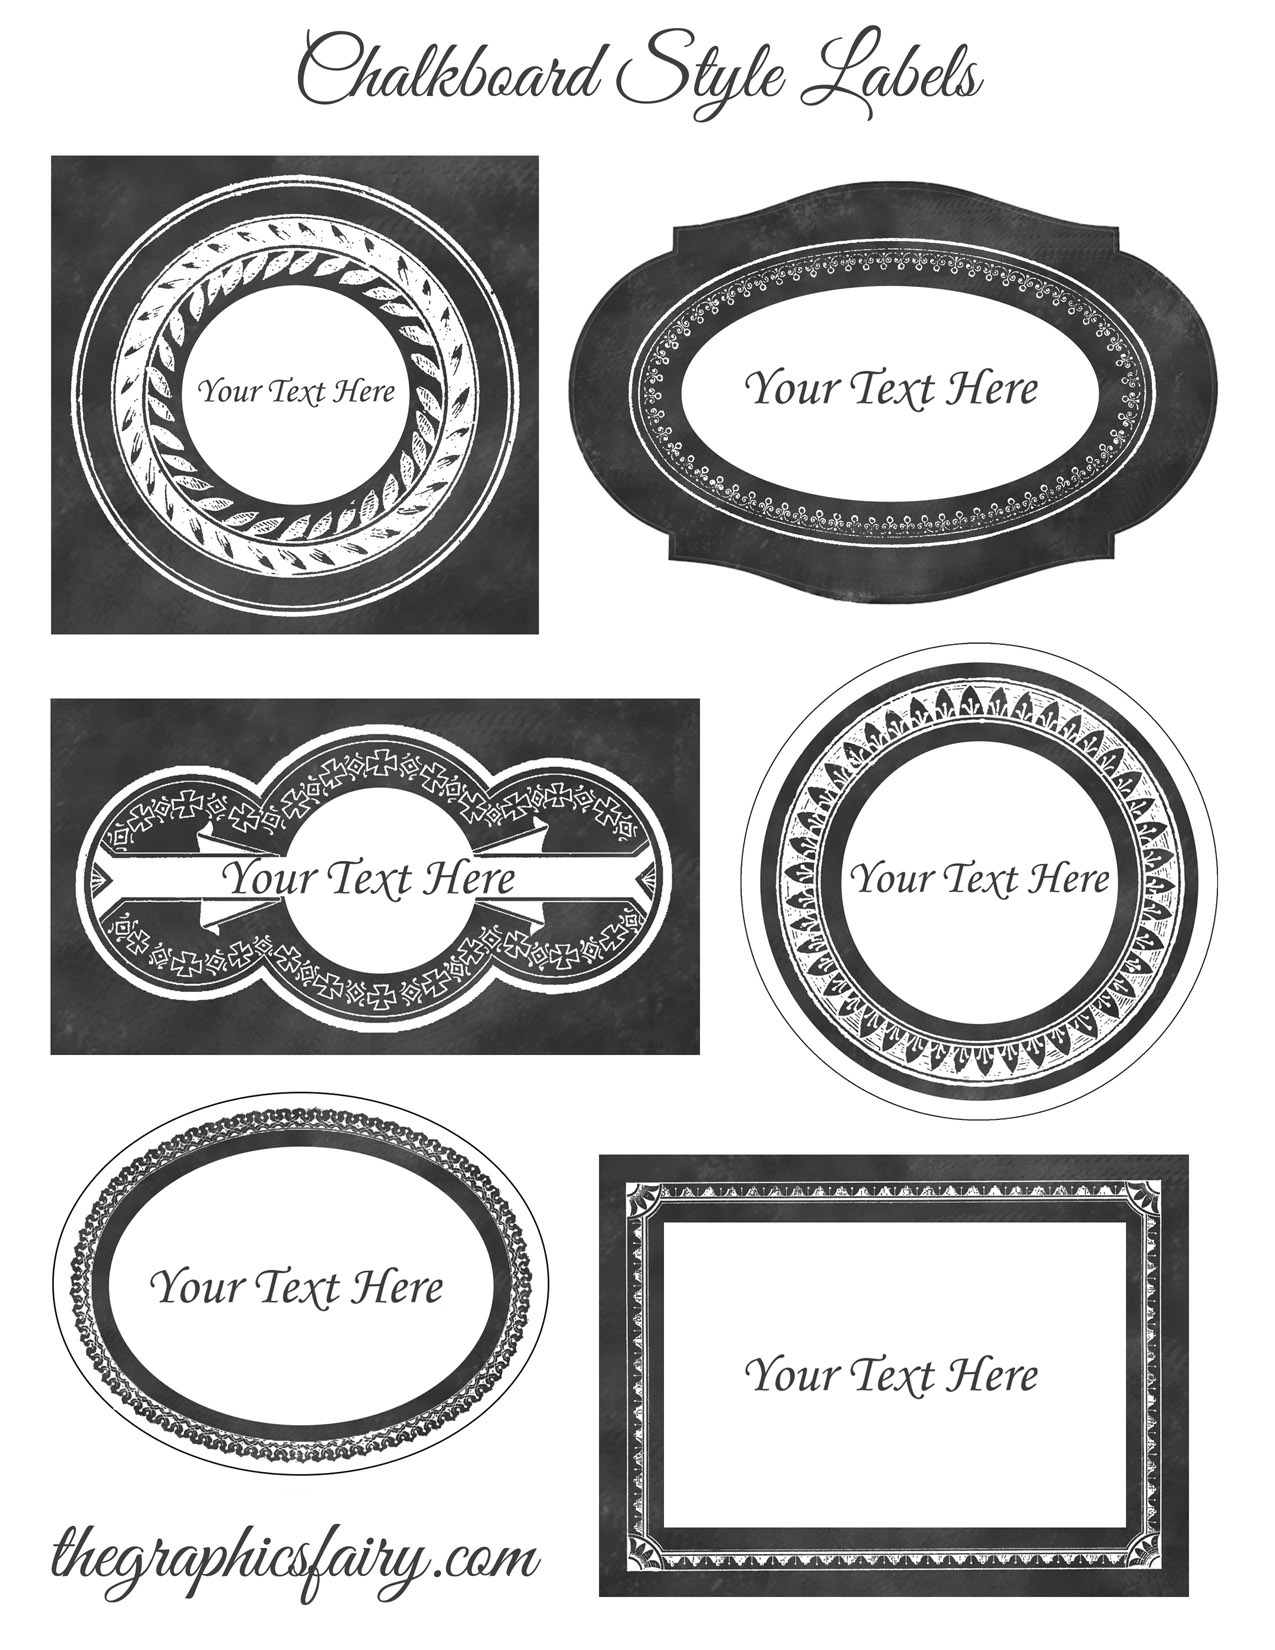 Chalkboard Style Printable Labels - Editable! - The Graphics Fairy - Free Customizable Printable Labels